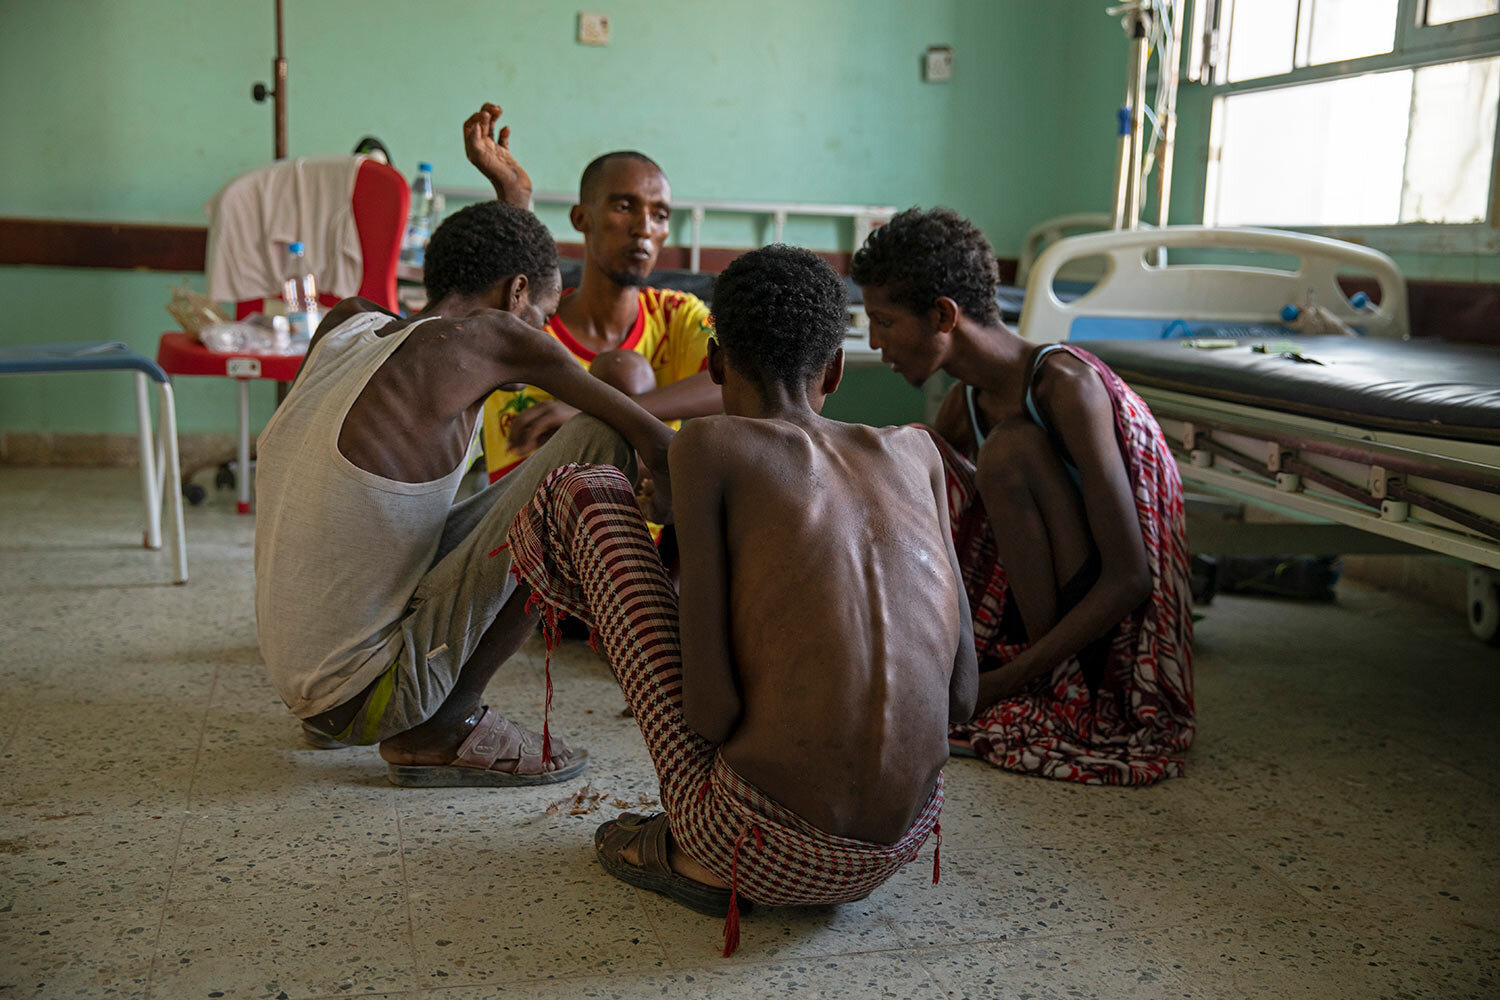 Ethiopian migrants, from center background to right, Gamal Hassan, Abdu Yassin, Mohammed Hussein, and Abdu Mohammed, who were imprisoned by traffickers for months, eat rice from a bowl on the floor, at the Ras al-Ara Hospital in Lahj, Yemen. They said they were fed once a day with scraps of bread and a sip of water when they were held. (AP Photo/Nariman El-Mofty)